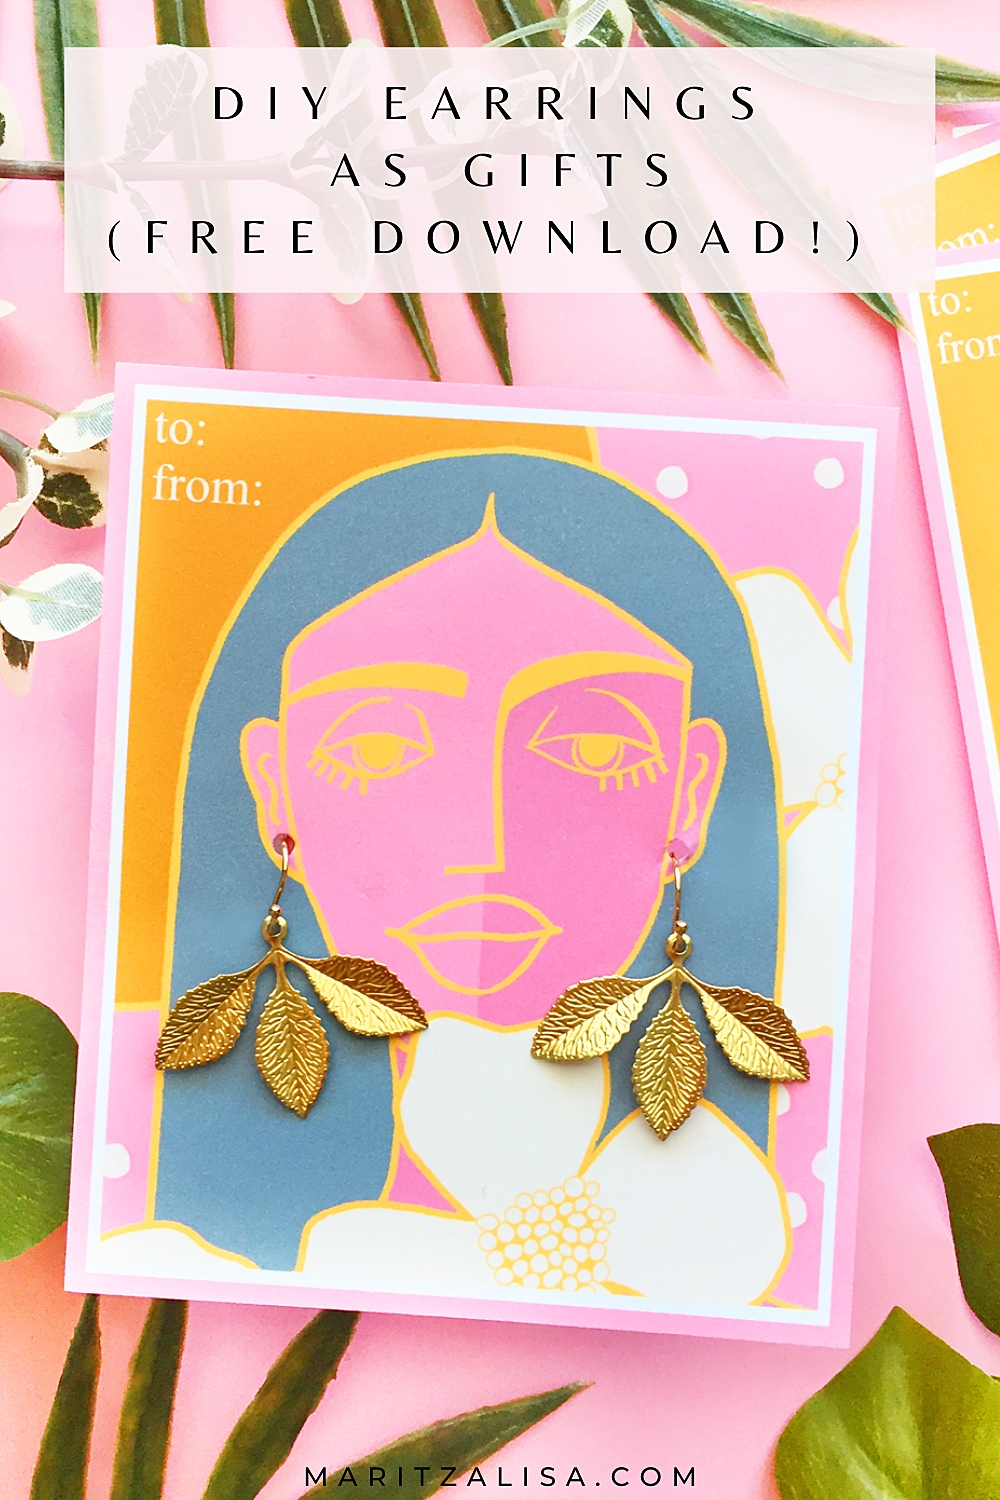 DIY Earrings As Gifts - In this tutorial, I will show you how to make super easy earrings as handmade gifts with a free download!